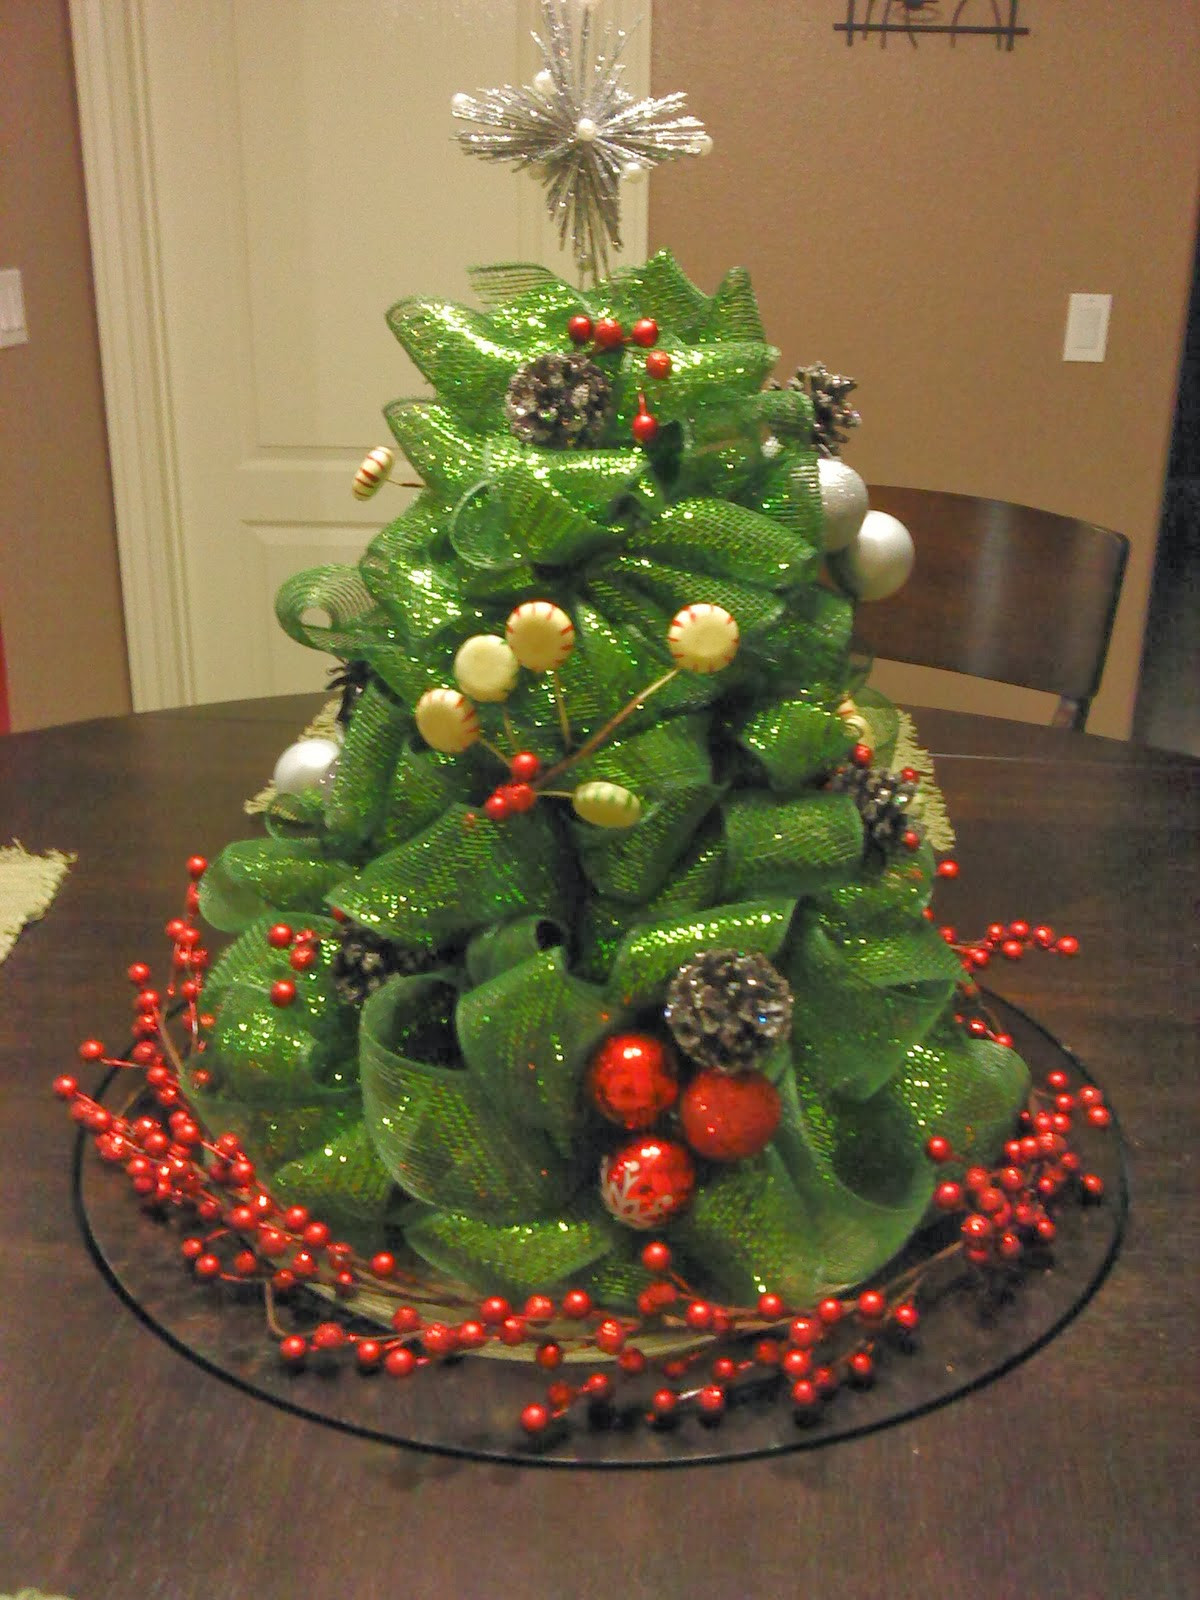 Best ideas about DIY Christmas Tree . Save or Pin DIY Christmas Trees Ideas DIY Craft Projects Now.